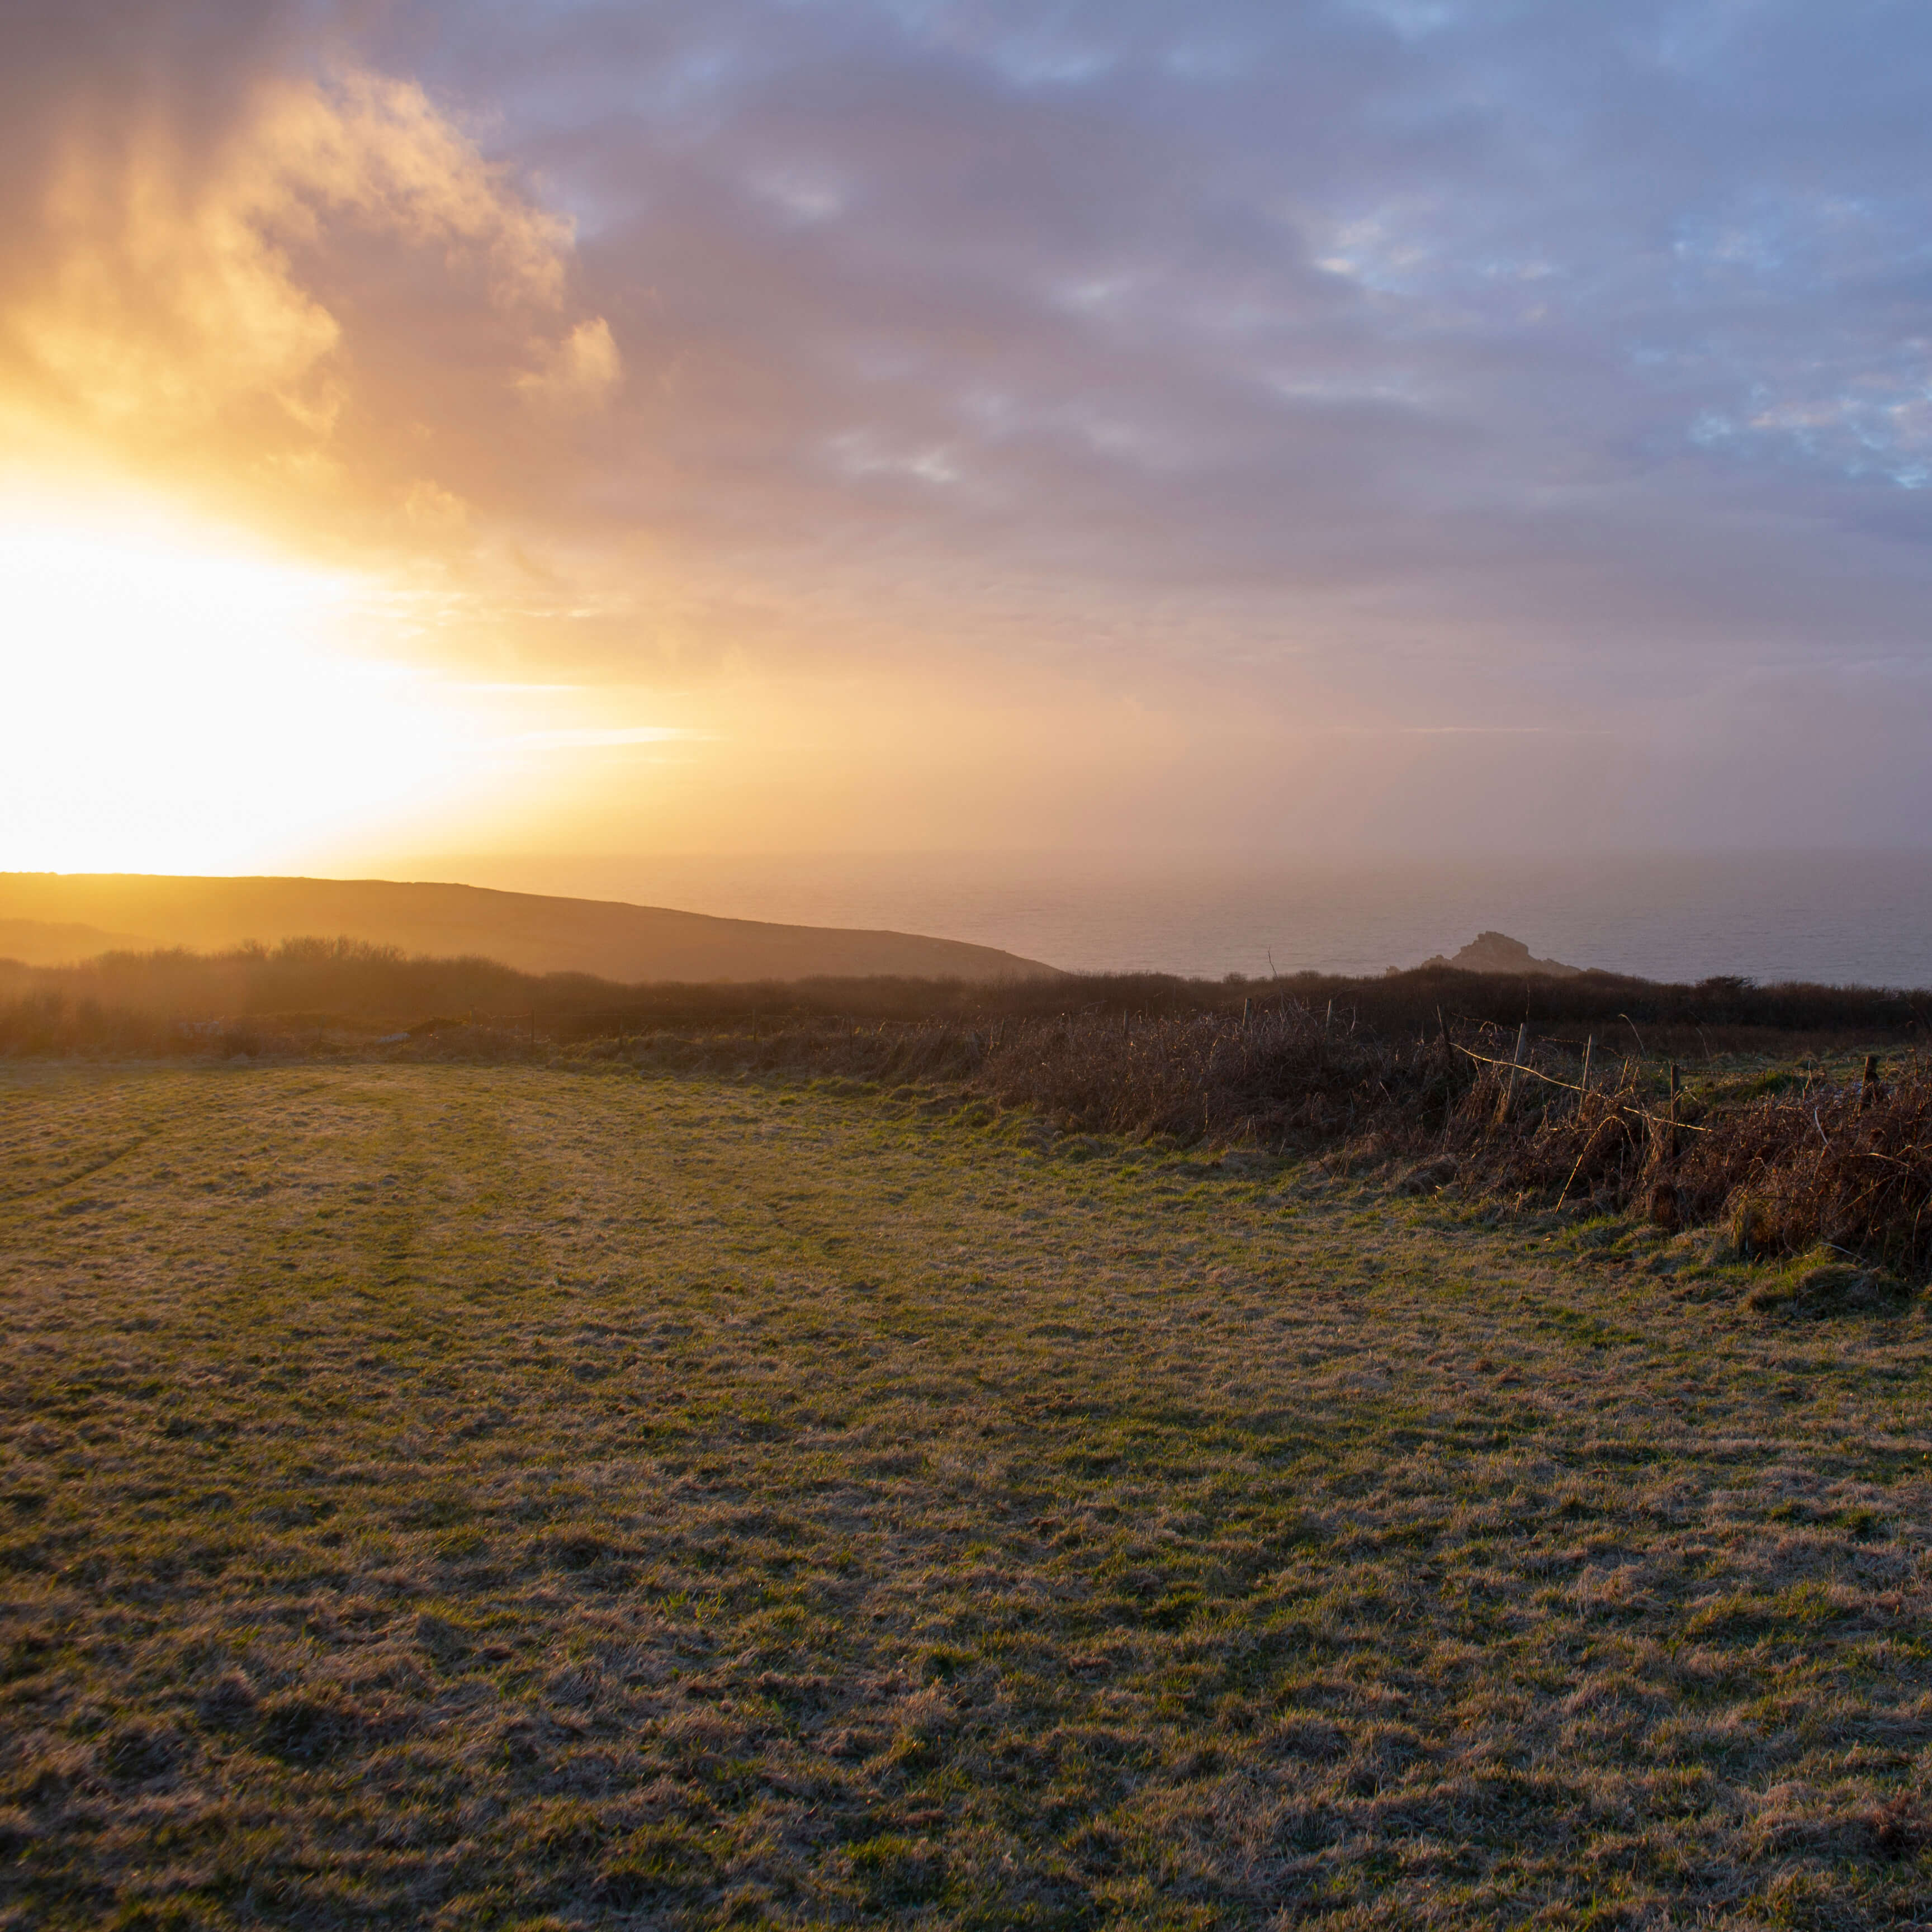 A sunset over a field by the ocean on a rare Cornish frost day.